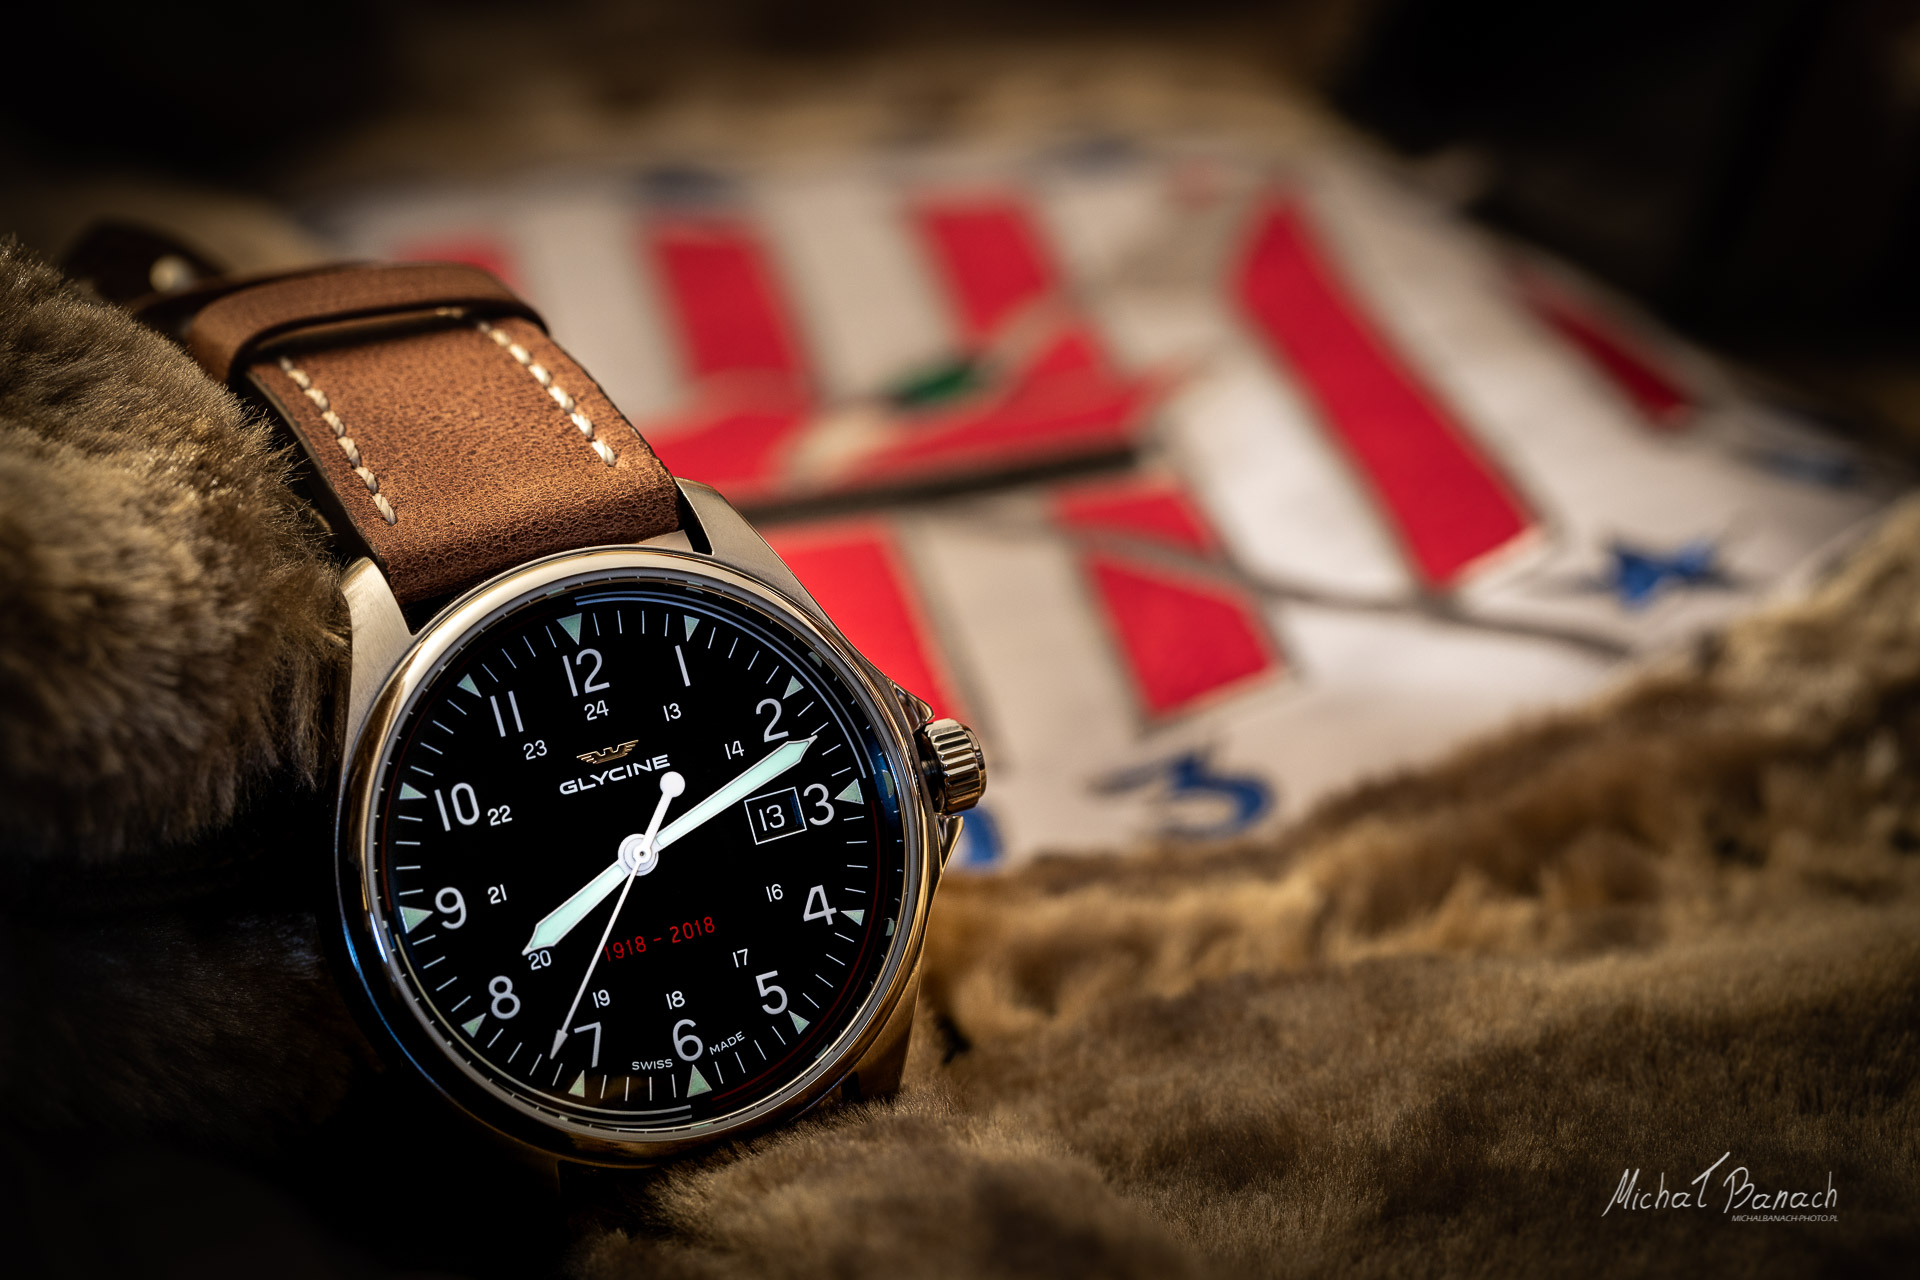 Glycine Polish Air Force 100 Years (1918-2018)